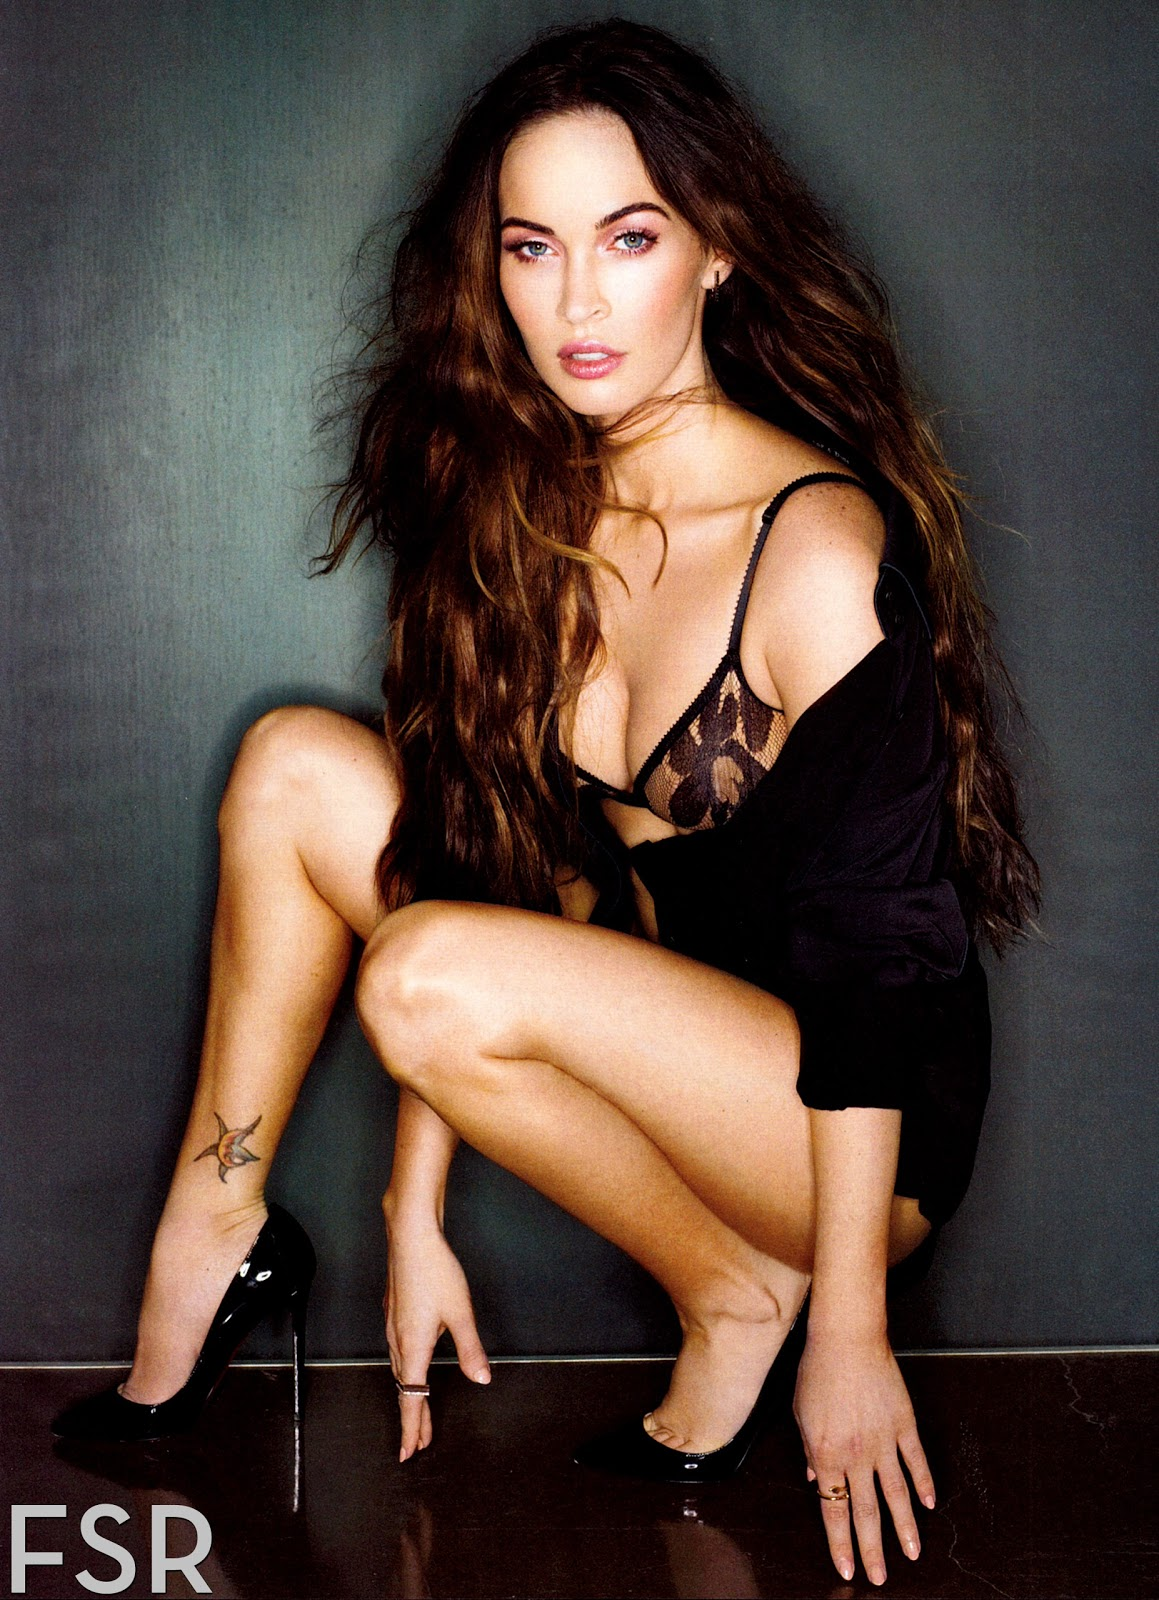 http://1.bp.blogspot.com/-890iV5tMpBY/UPa_nrXcRuI/AAAAAAAC9VQ/i4y7TYUBmZ4/s1600/fashion_scans_remastered-megan_fox-esquire_usa-february_2013-scanned_by_vampirehorde-hq-2.jpg